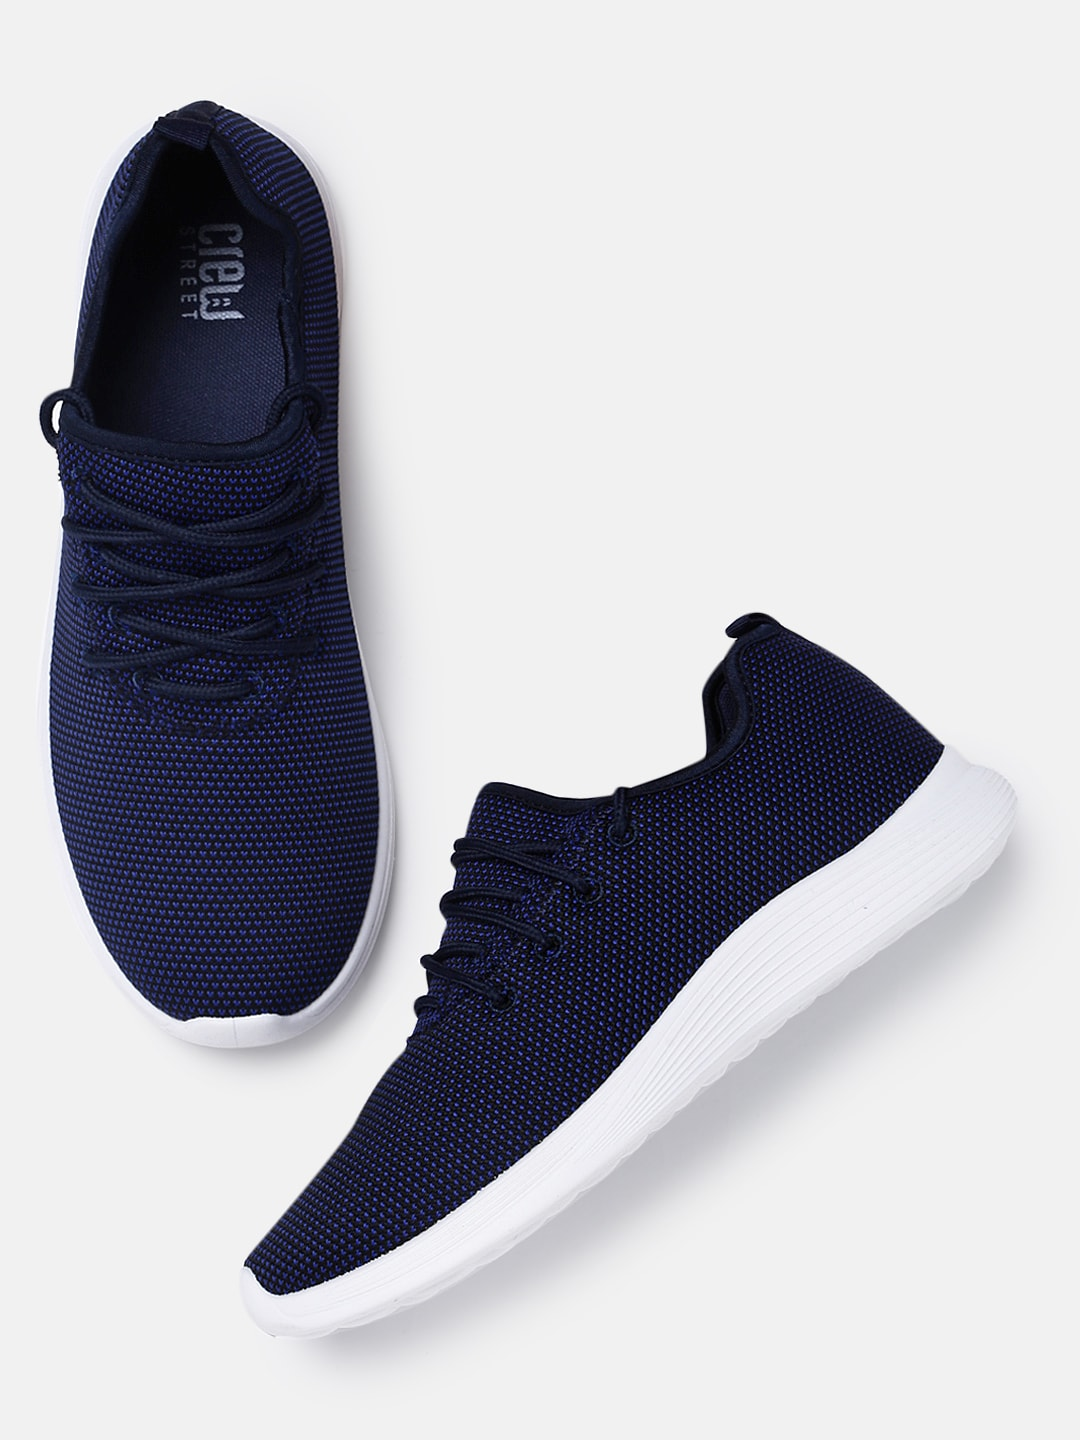 official photos 9651b de59b Shoes for Men - Buy Mens Shoes Online at Best Price   Myntra